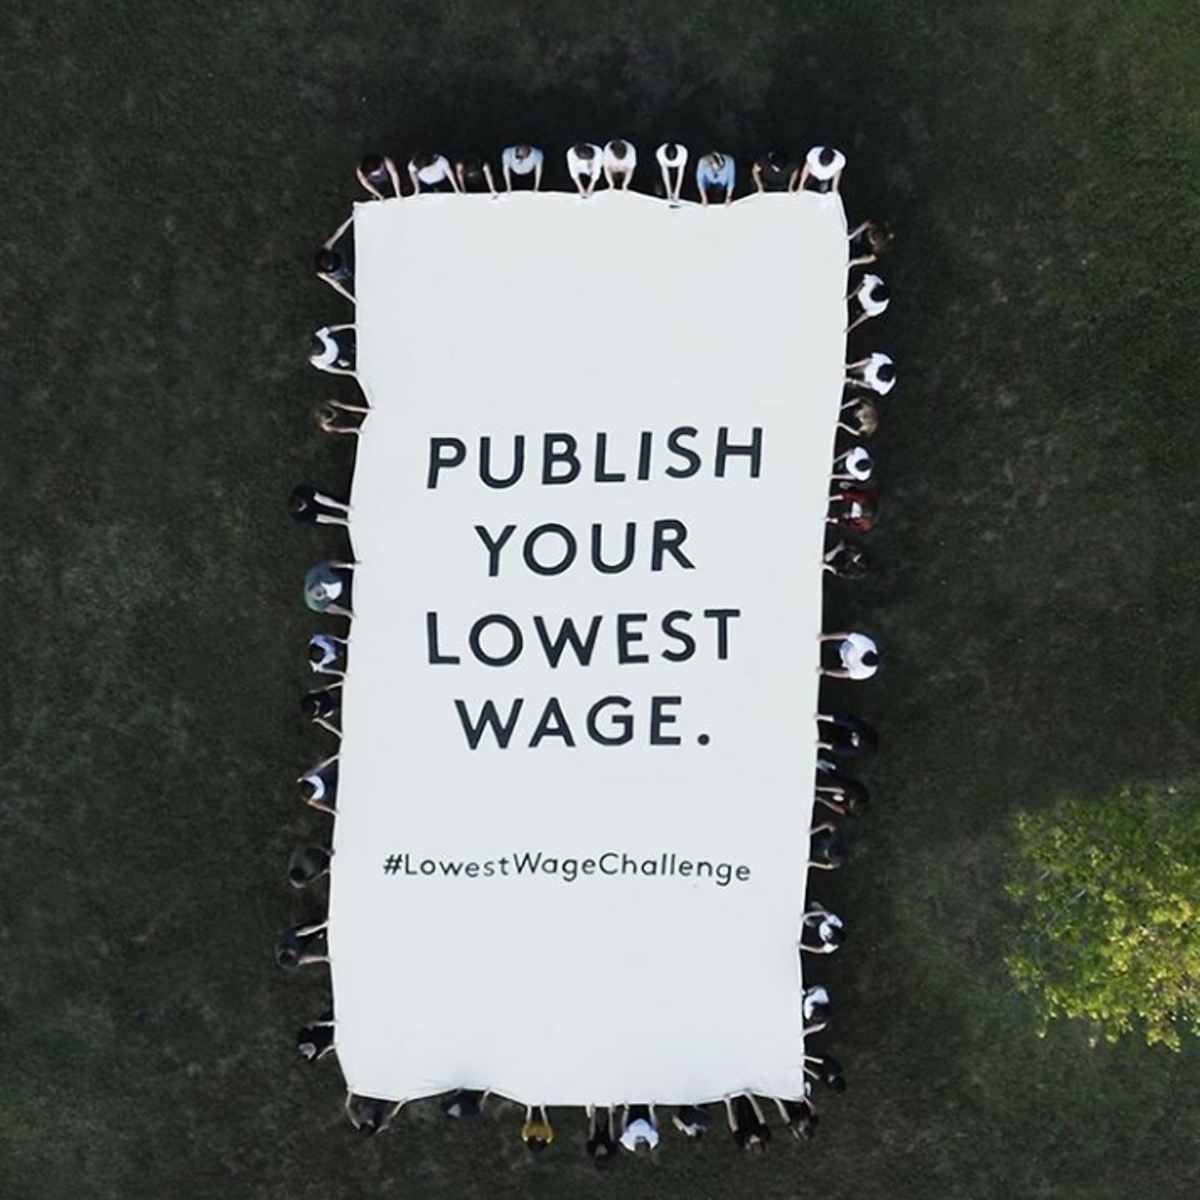 """Bird's view of people holding a large sheet that says """"Publish your lowest wage. #LowestWageChallenge"""""""